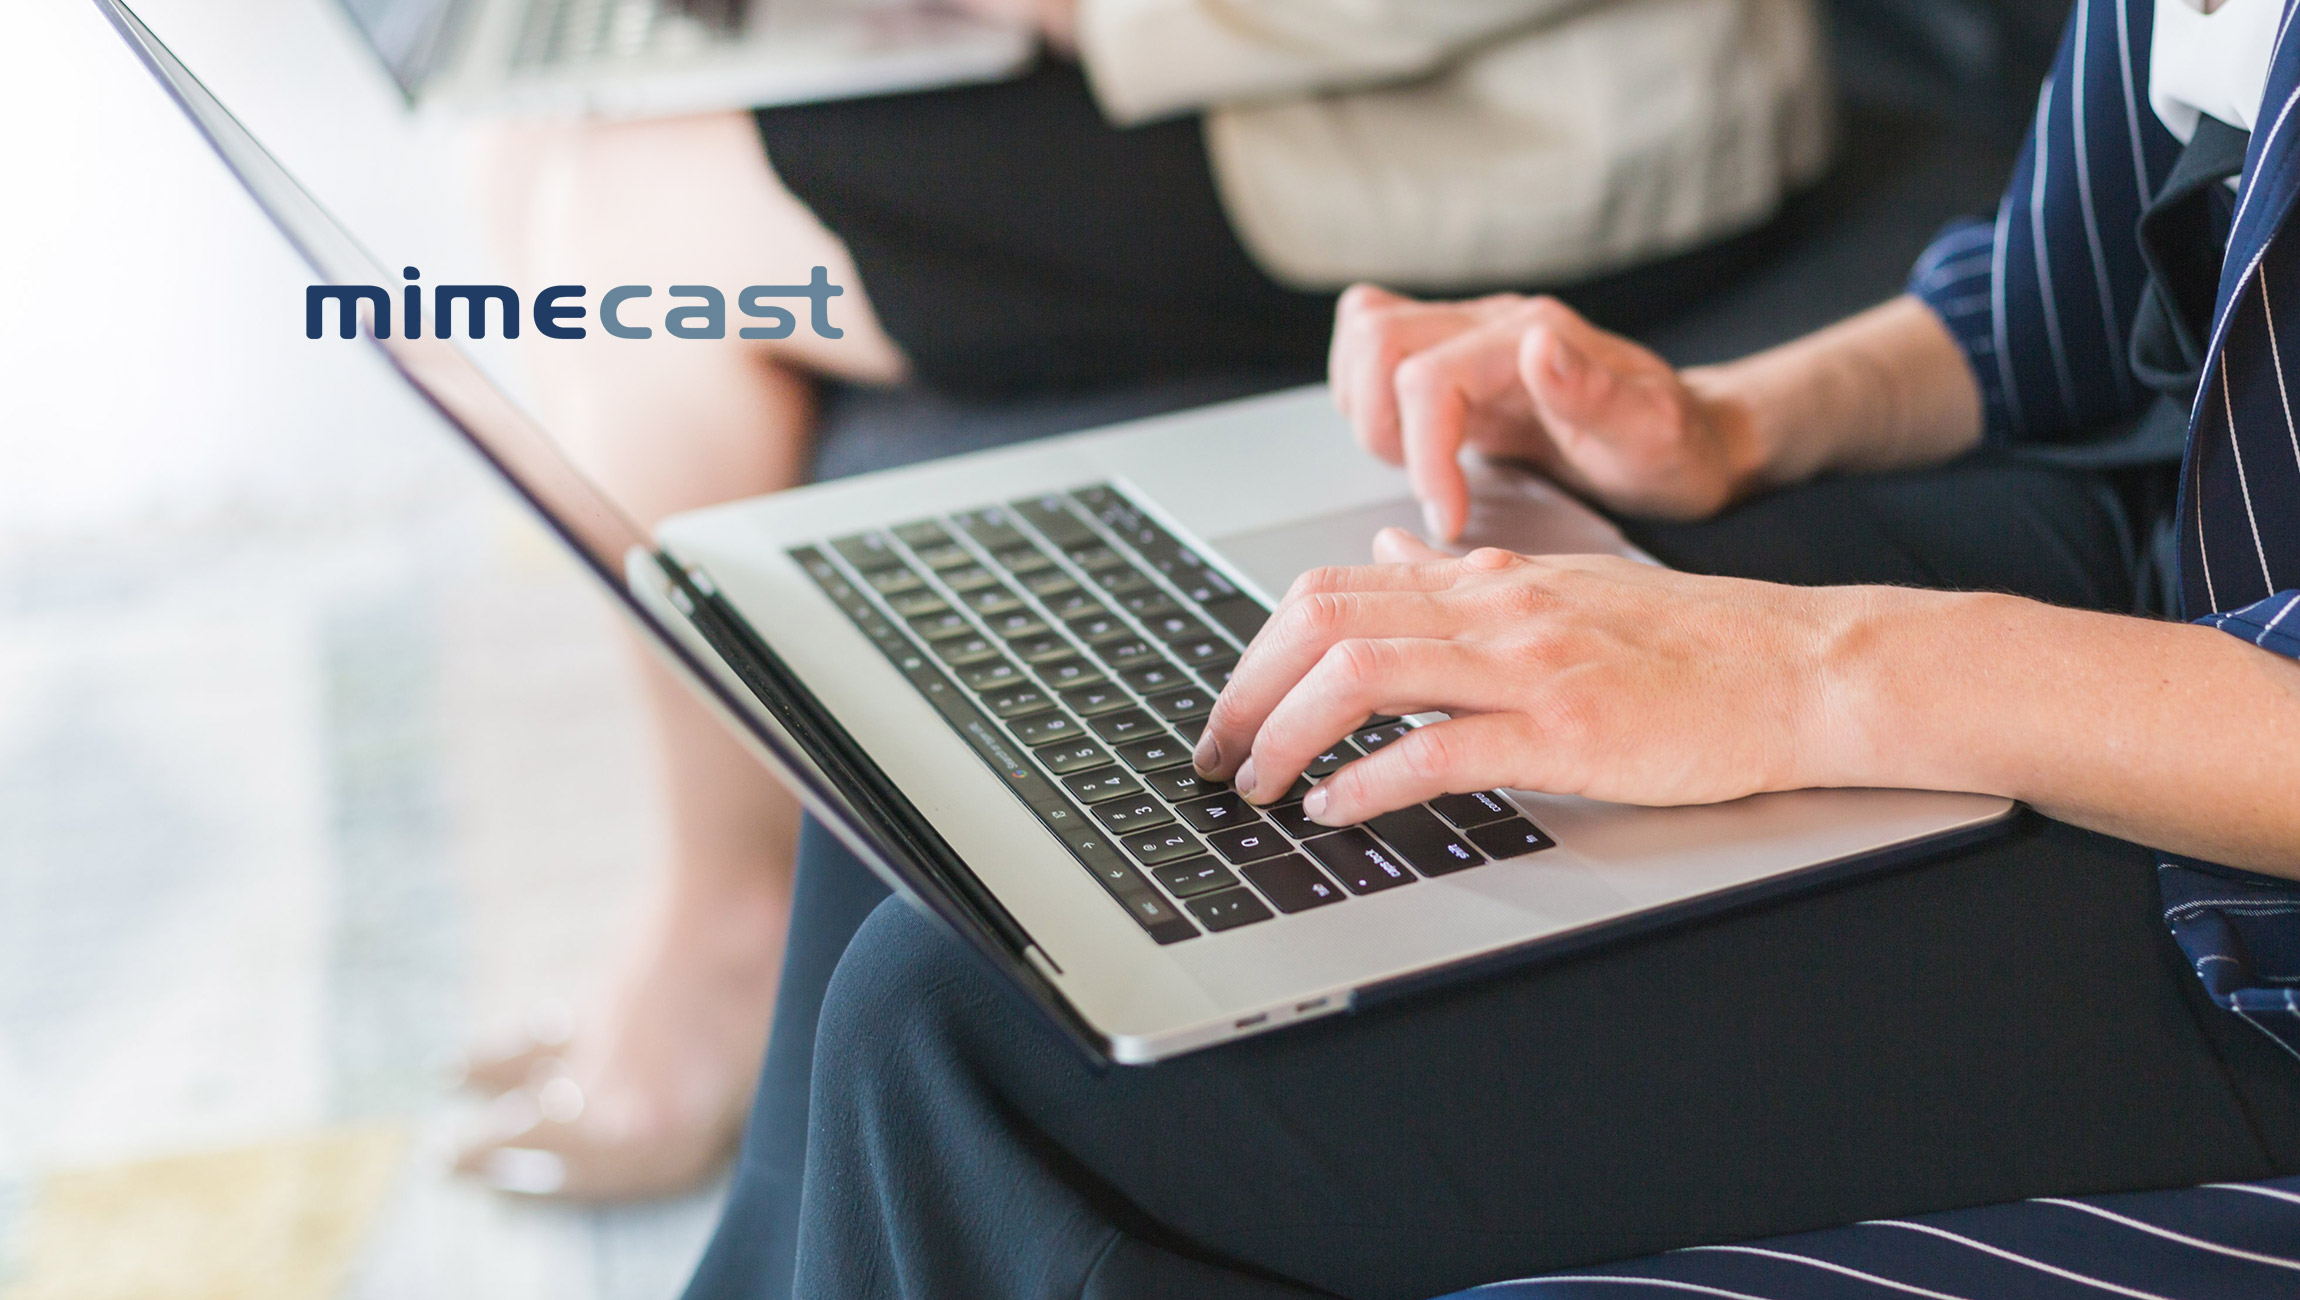 Mimecast Acquires Ataata to Fortify Cyber Resilience for Email Capabilities